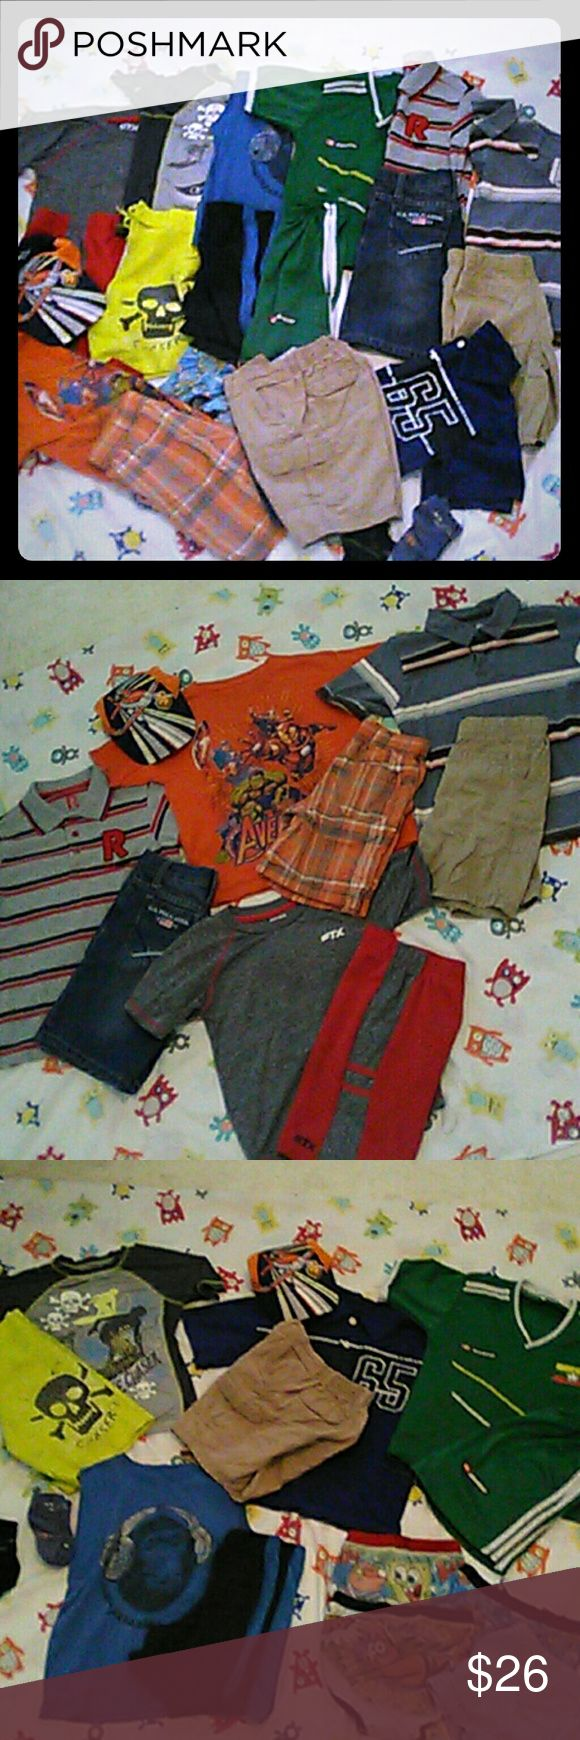 "Boy Summer Clothes Bundle Size 5 Over 20 Pieces!! Boys Summer Clothes Bundle. All size 5 or fit like it.   Name brands include Polo OshKosh First Wave OP Rebellio wear & more 3 Polo Tops 1 Swim Shirt 1 Swim Shorts (set) 1 Soccer set 1 athletic set 8 Shorts (total) 5 Tee Shirts Socks Underwear 1 Hat  Great pre loved condition with normal wash and wear. Some items MAY have a spot here or there but nothing major. Lots of name brands...underwear socks & Planes ""Dusty"" ball cap included. Perfect…"